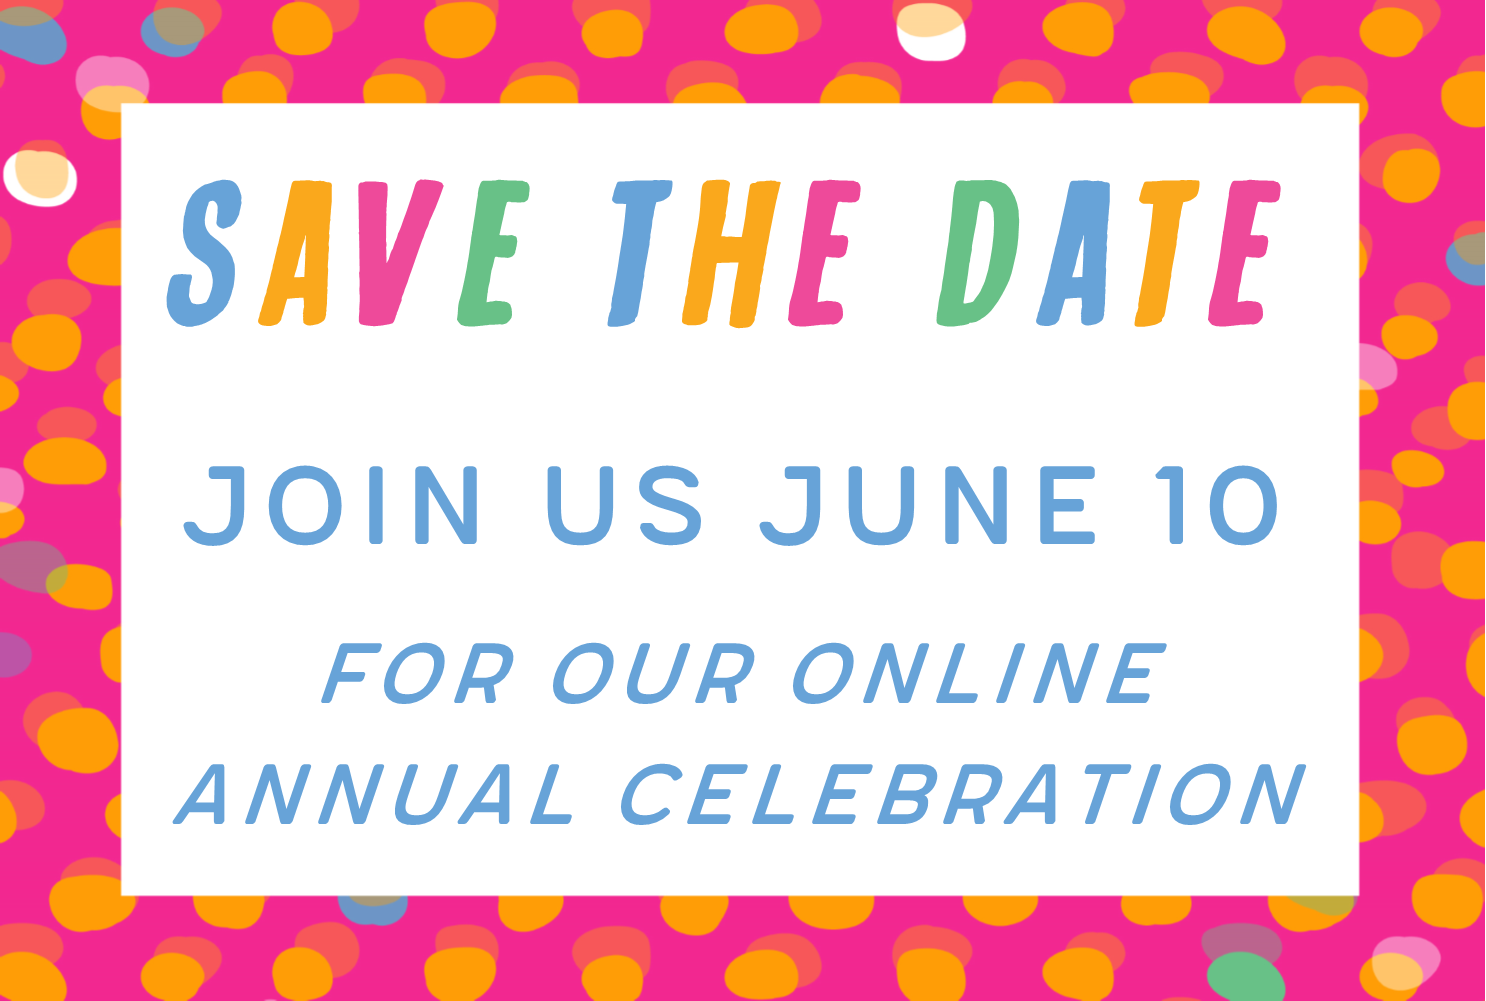 Annual Celebration Online